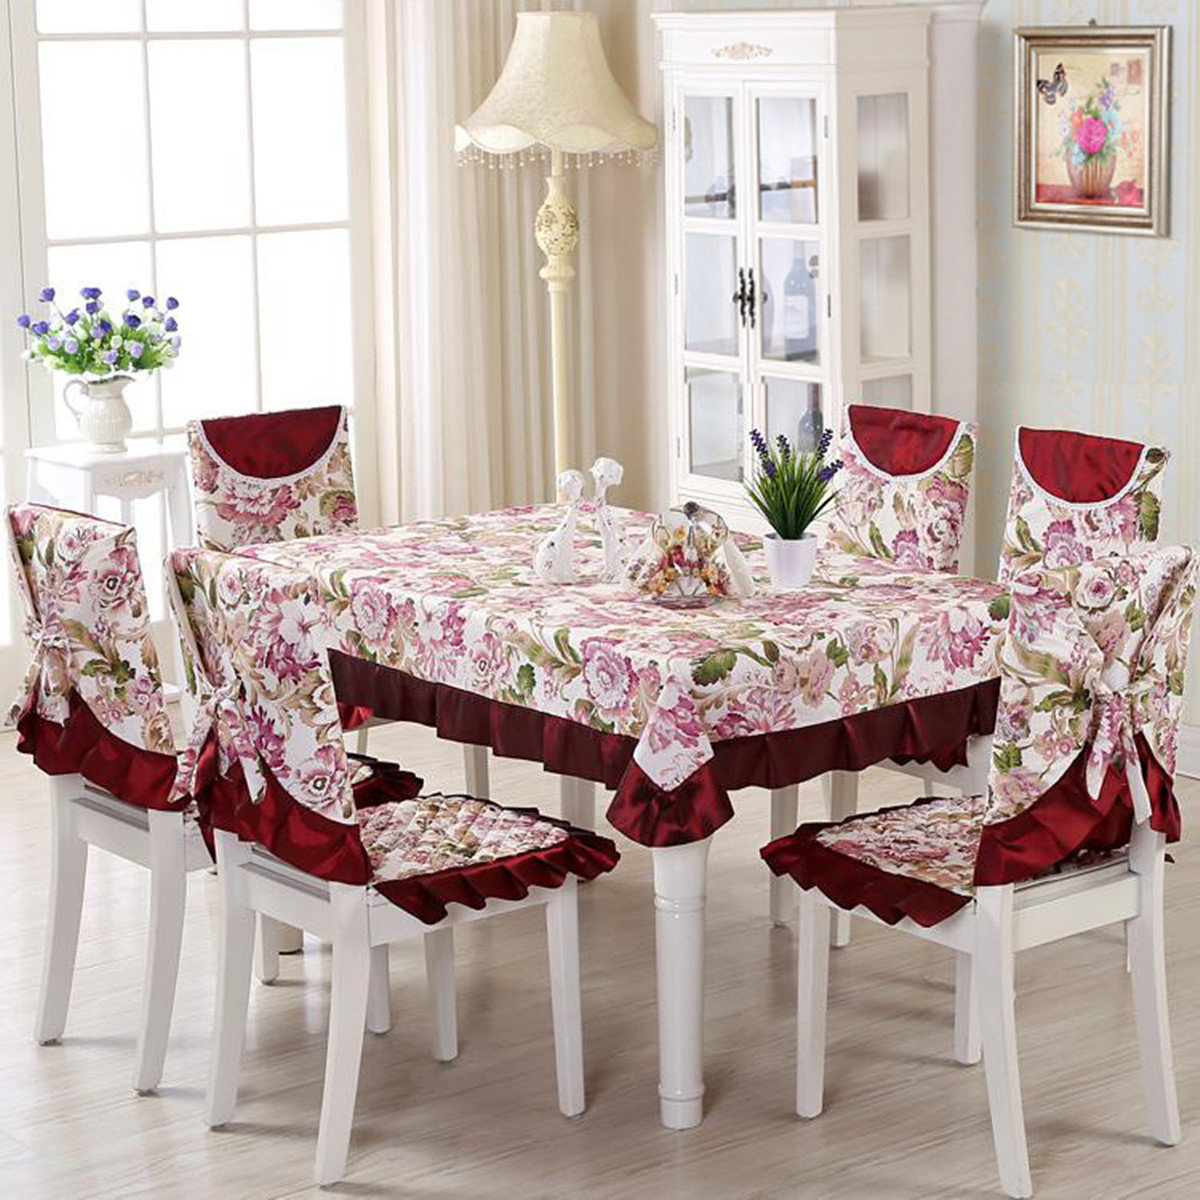 chair covers vintage best buy computer chairs fantastic floral lace table cloth dining set wedding party decor newchic